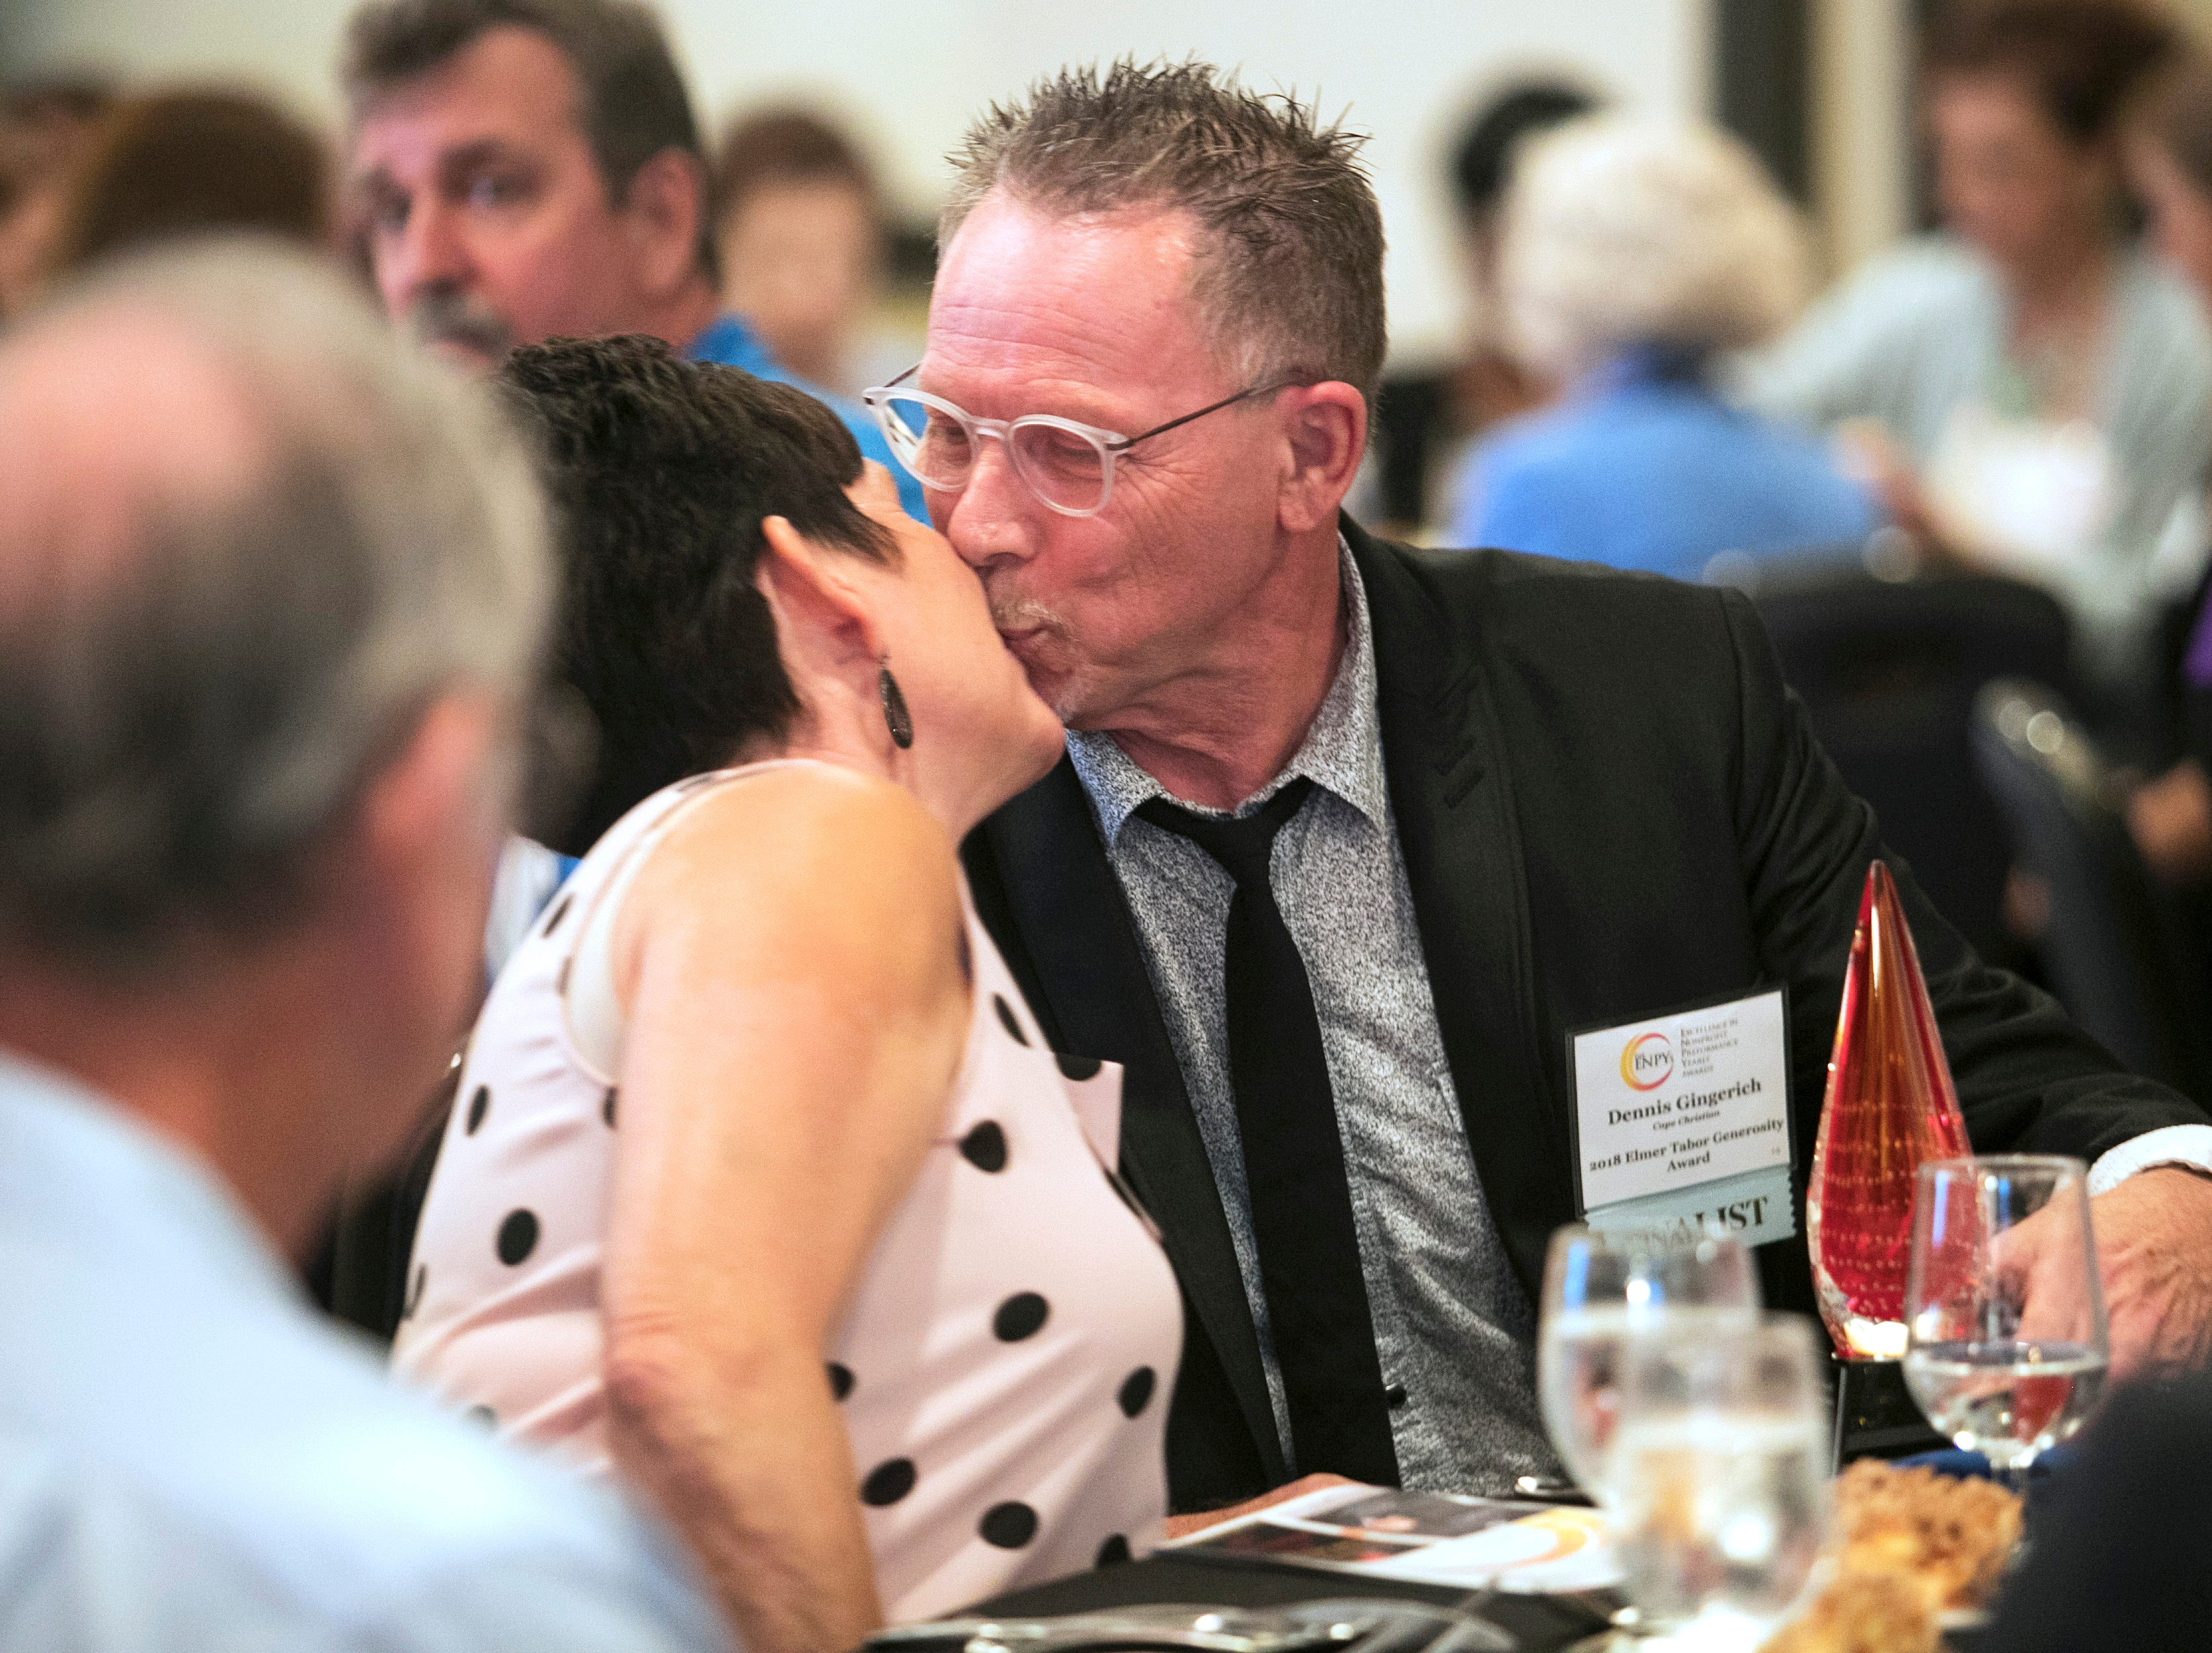 Dennis Gingerich gets a congratulatory kiss from his wife Linda after he won the 2018 Elmer Tabor Generosity Award at the Excellence in Nonprofit Performance Yearly Awards on Tuesday, October 9, 2018, in Fort Myers.